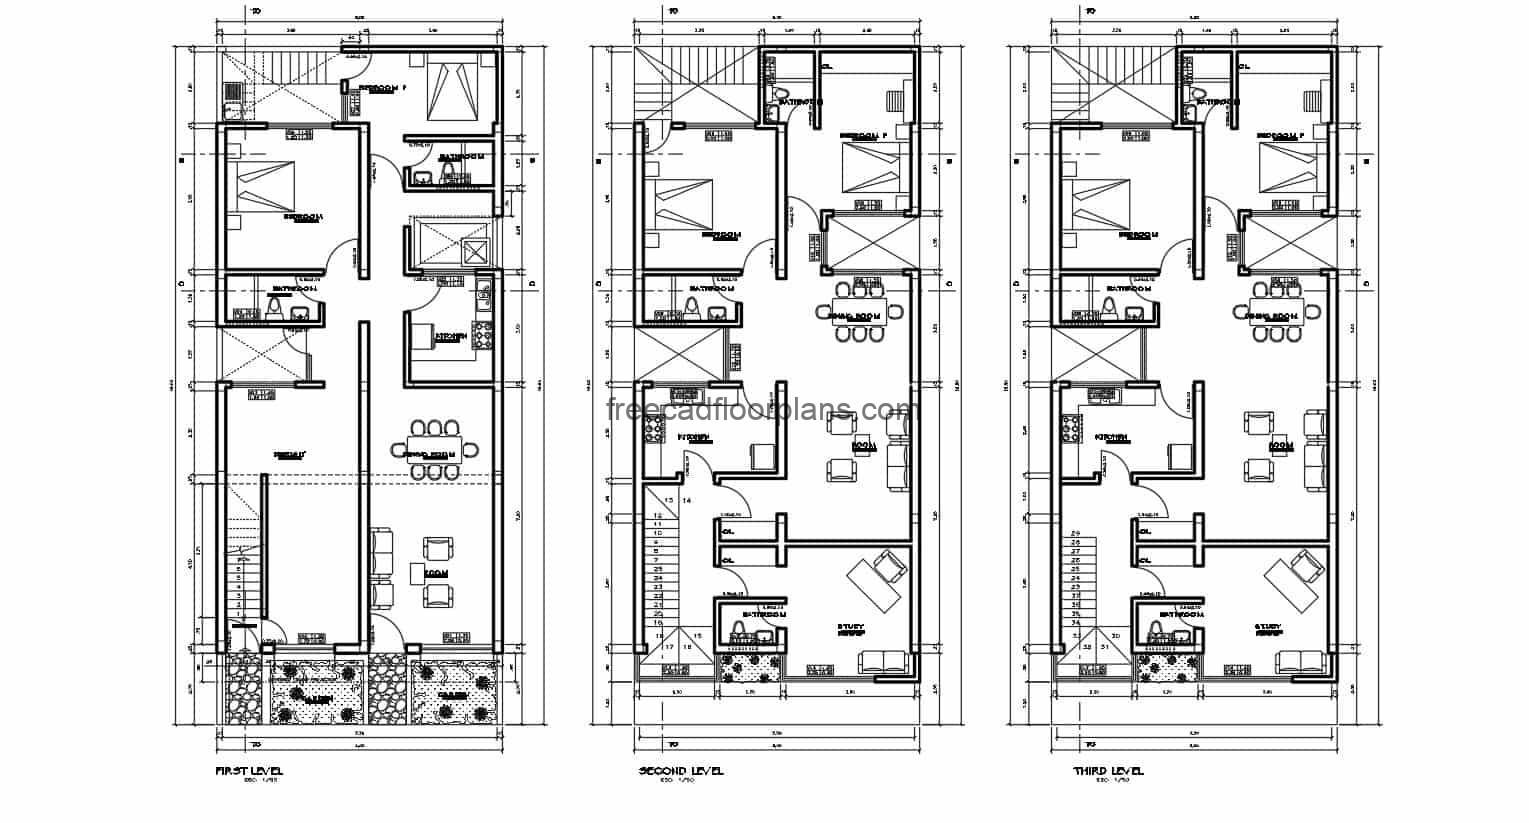 Residence of three independent levels with two rooms each, the complete project includes architectural plans, dimensions, sections, elevations, foundations, and technical sanitary, electrical and structural plans. Blueprints in Autocad DWG format for free download.